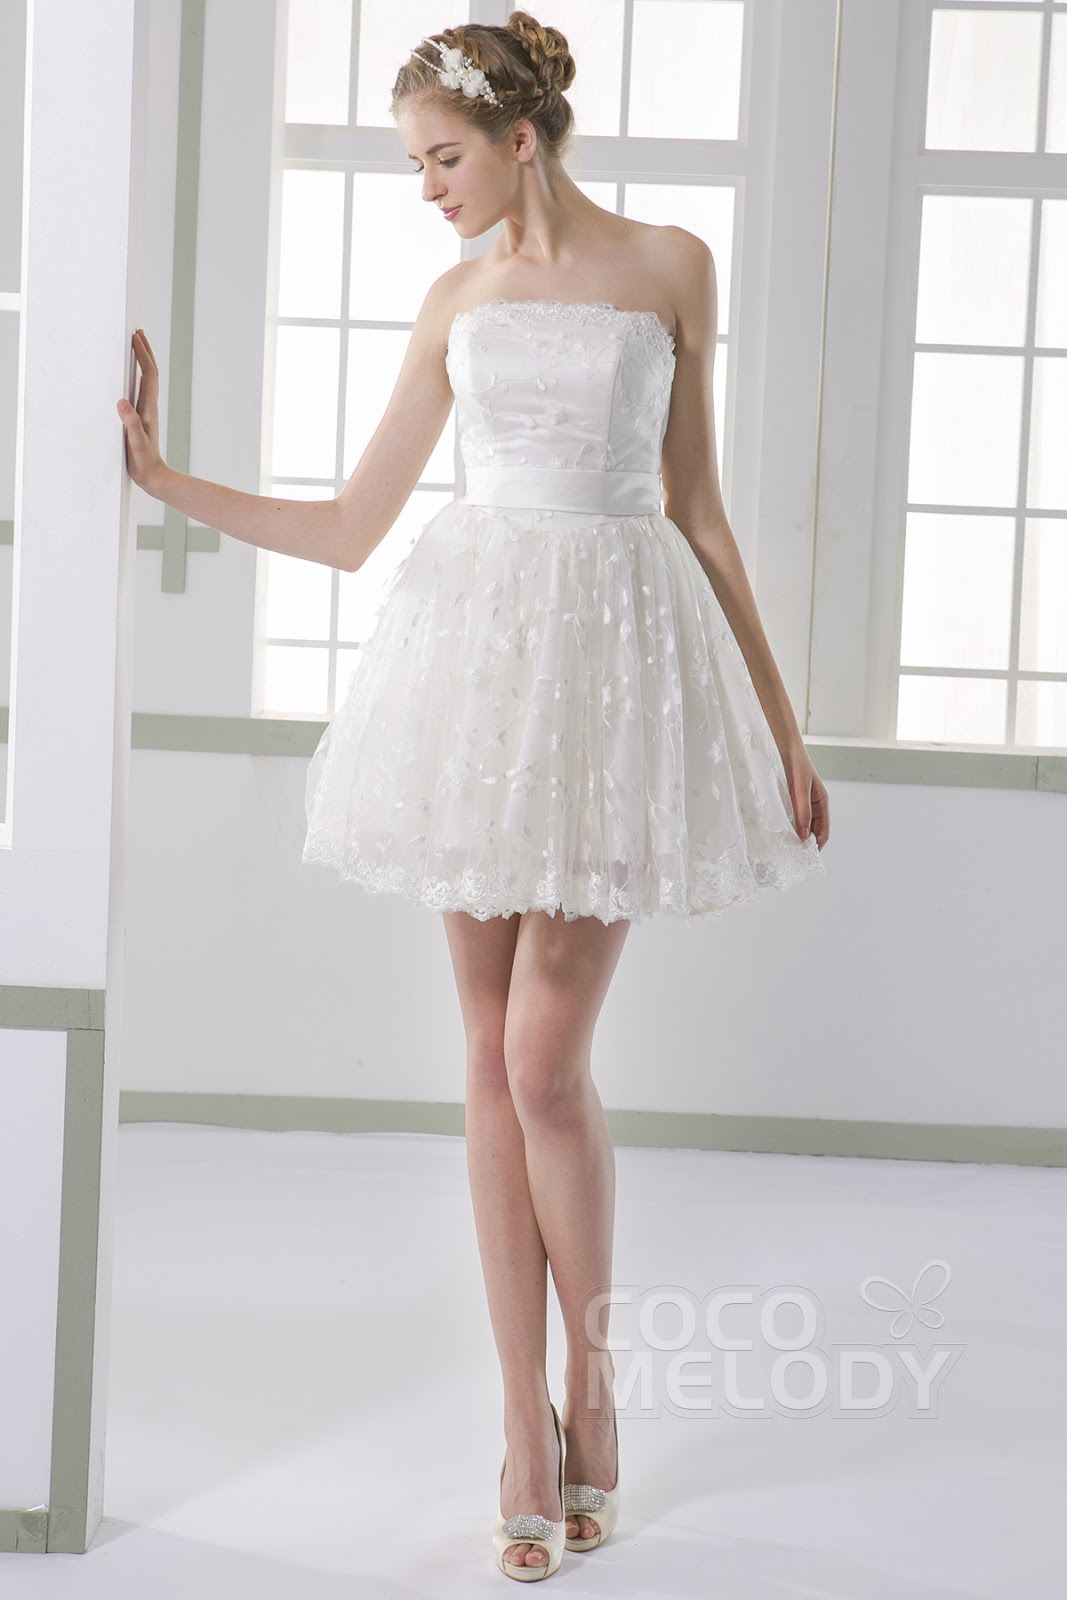 b4e17ed80 Charming Princess Strapless Train Tulle Ivory Sleeveless Lace Up-Corset  Wedding Dress with Appliques - This dress will never fail to make you feel  ...